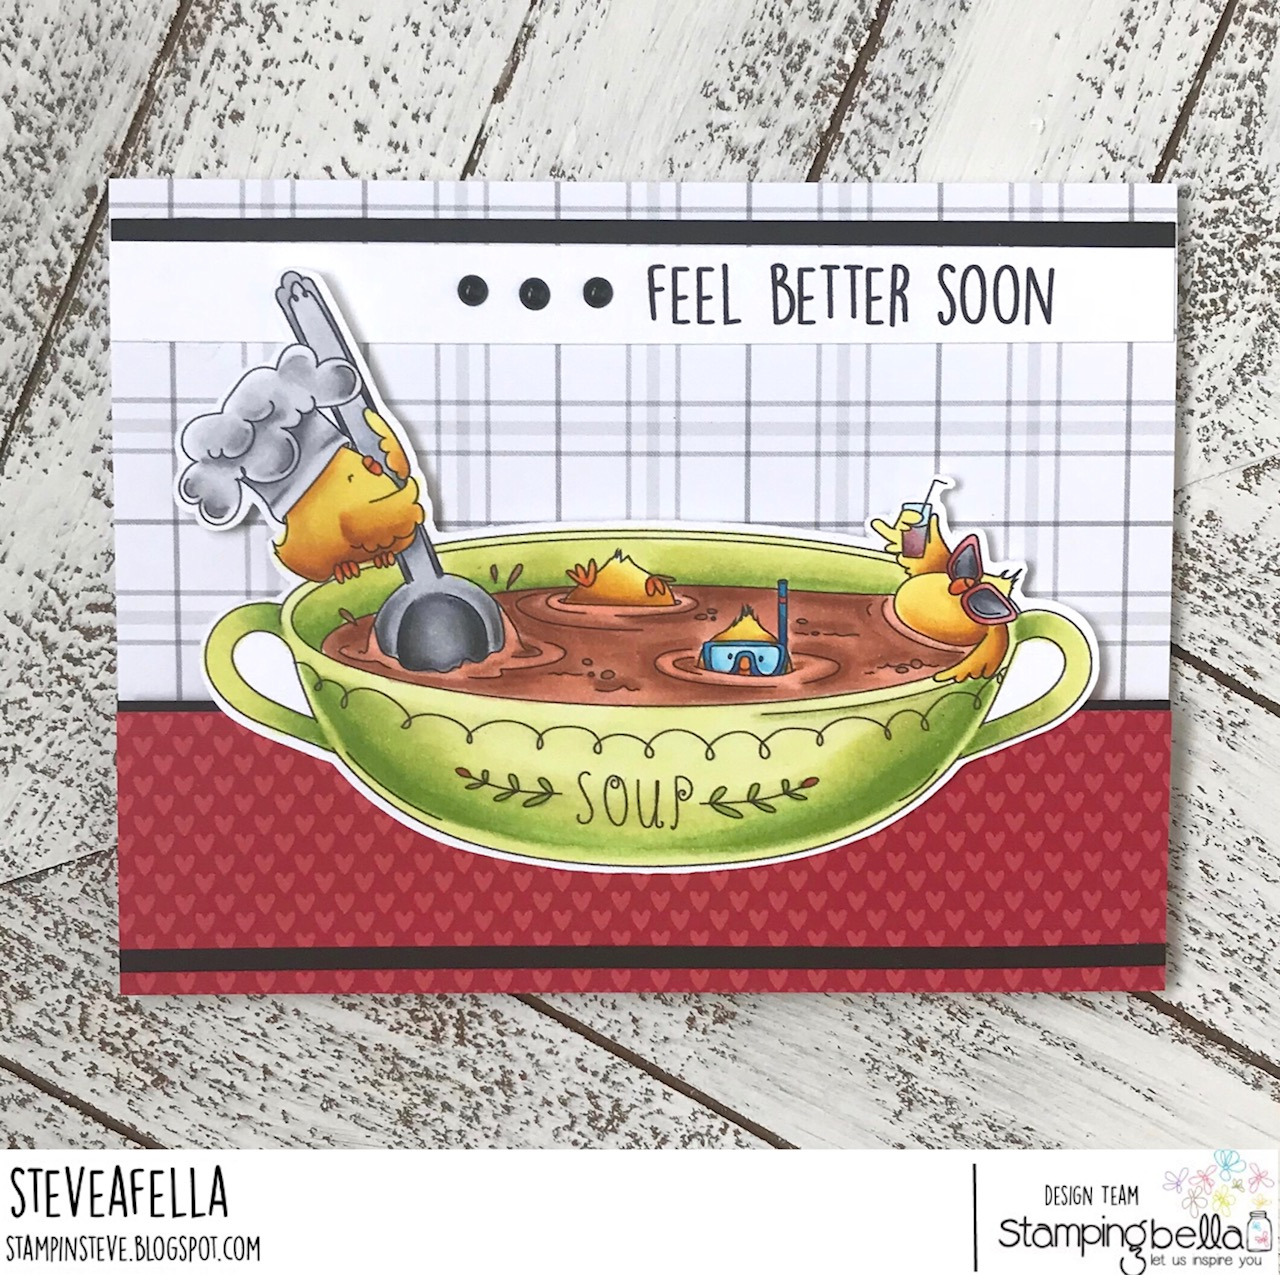 www.stampingbella.com: rubber stamp used: CHICK-en soup, card by Stephen Kropf